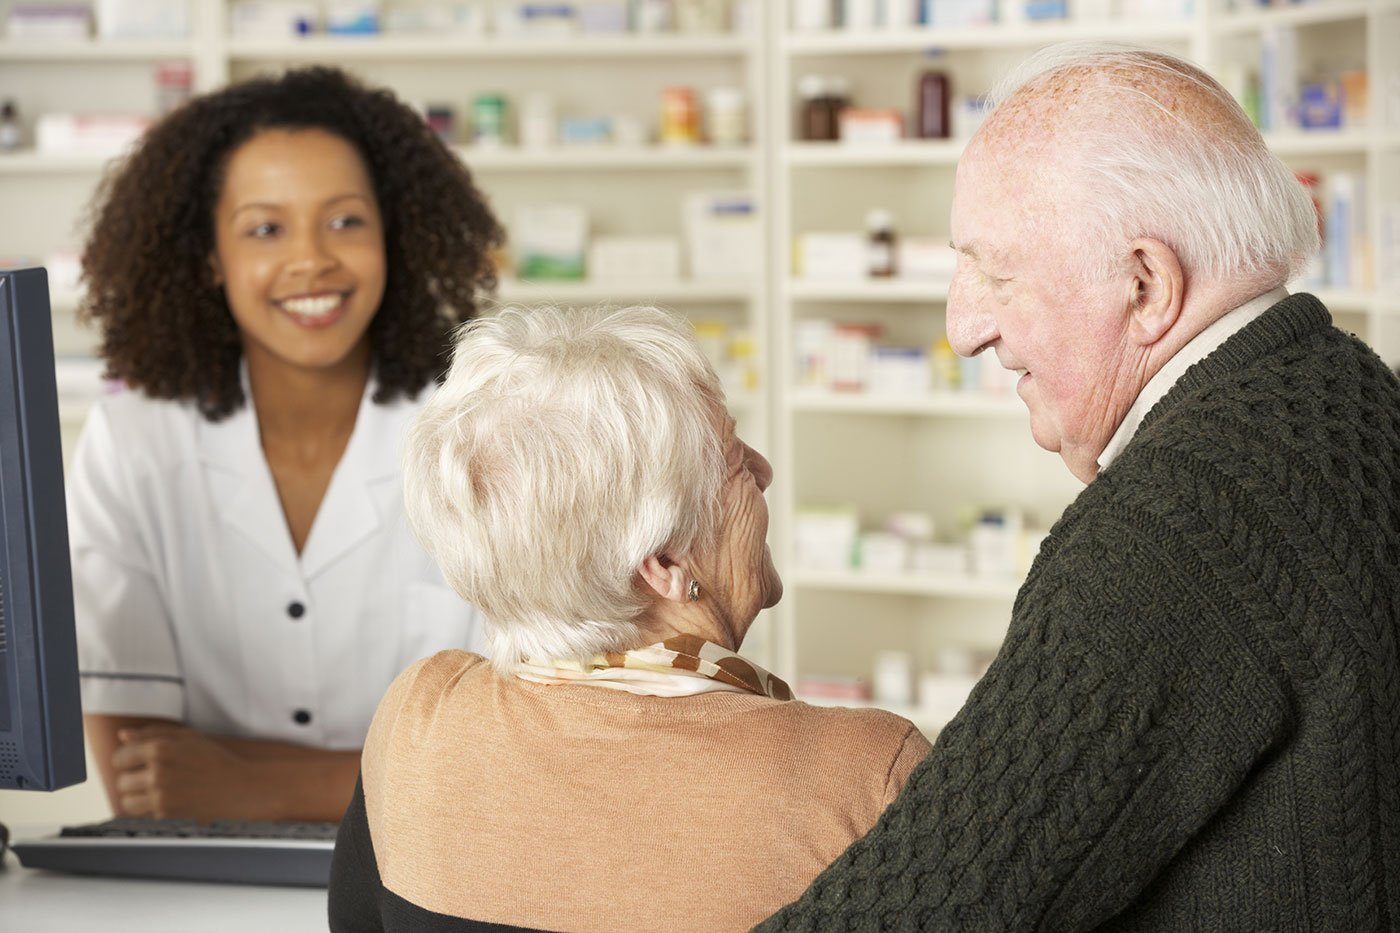 Learn About Pharmacy Jobs - Pharmacy is Right for Me